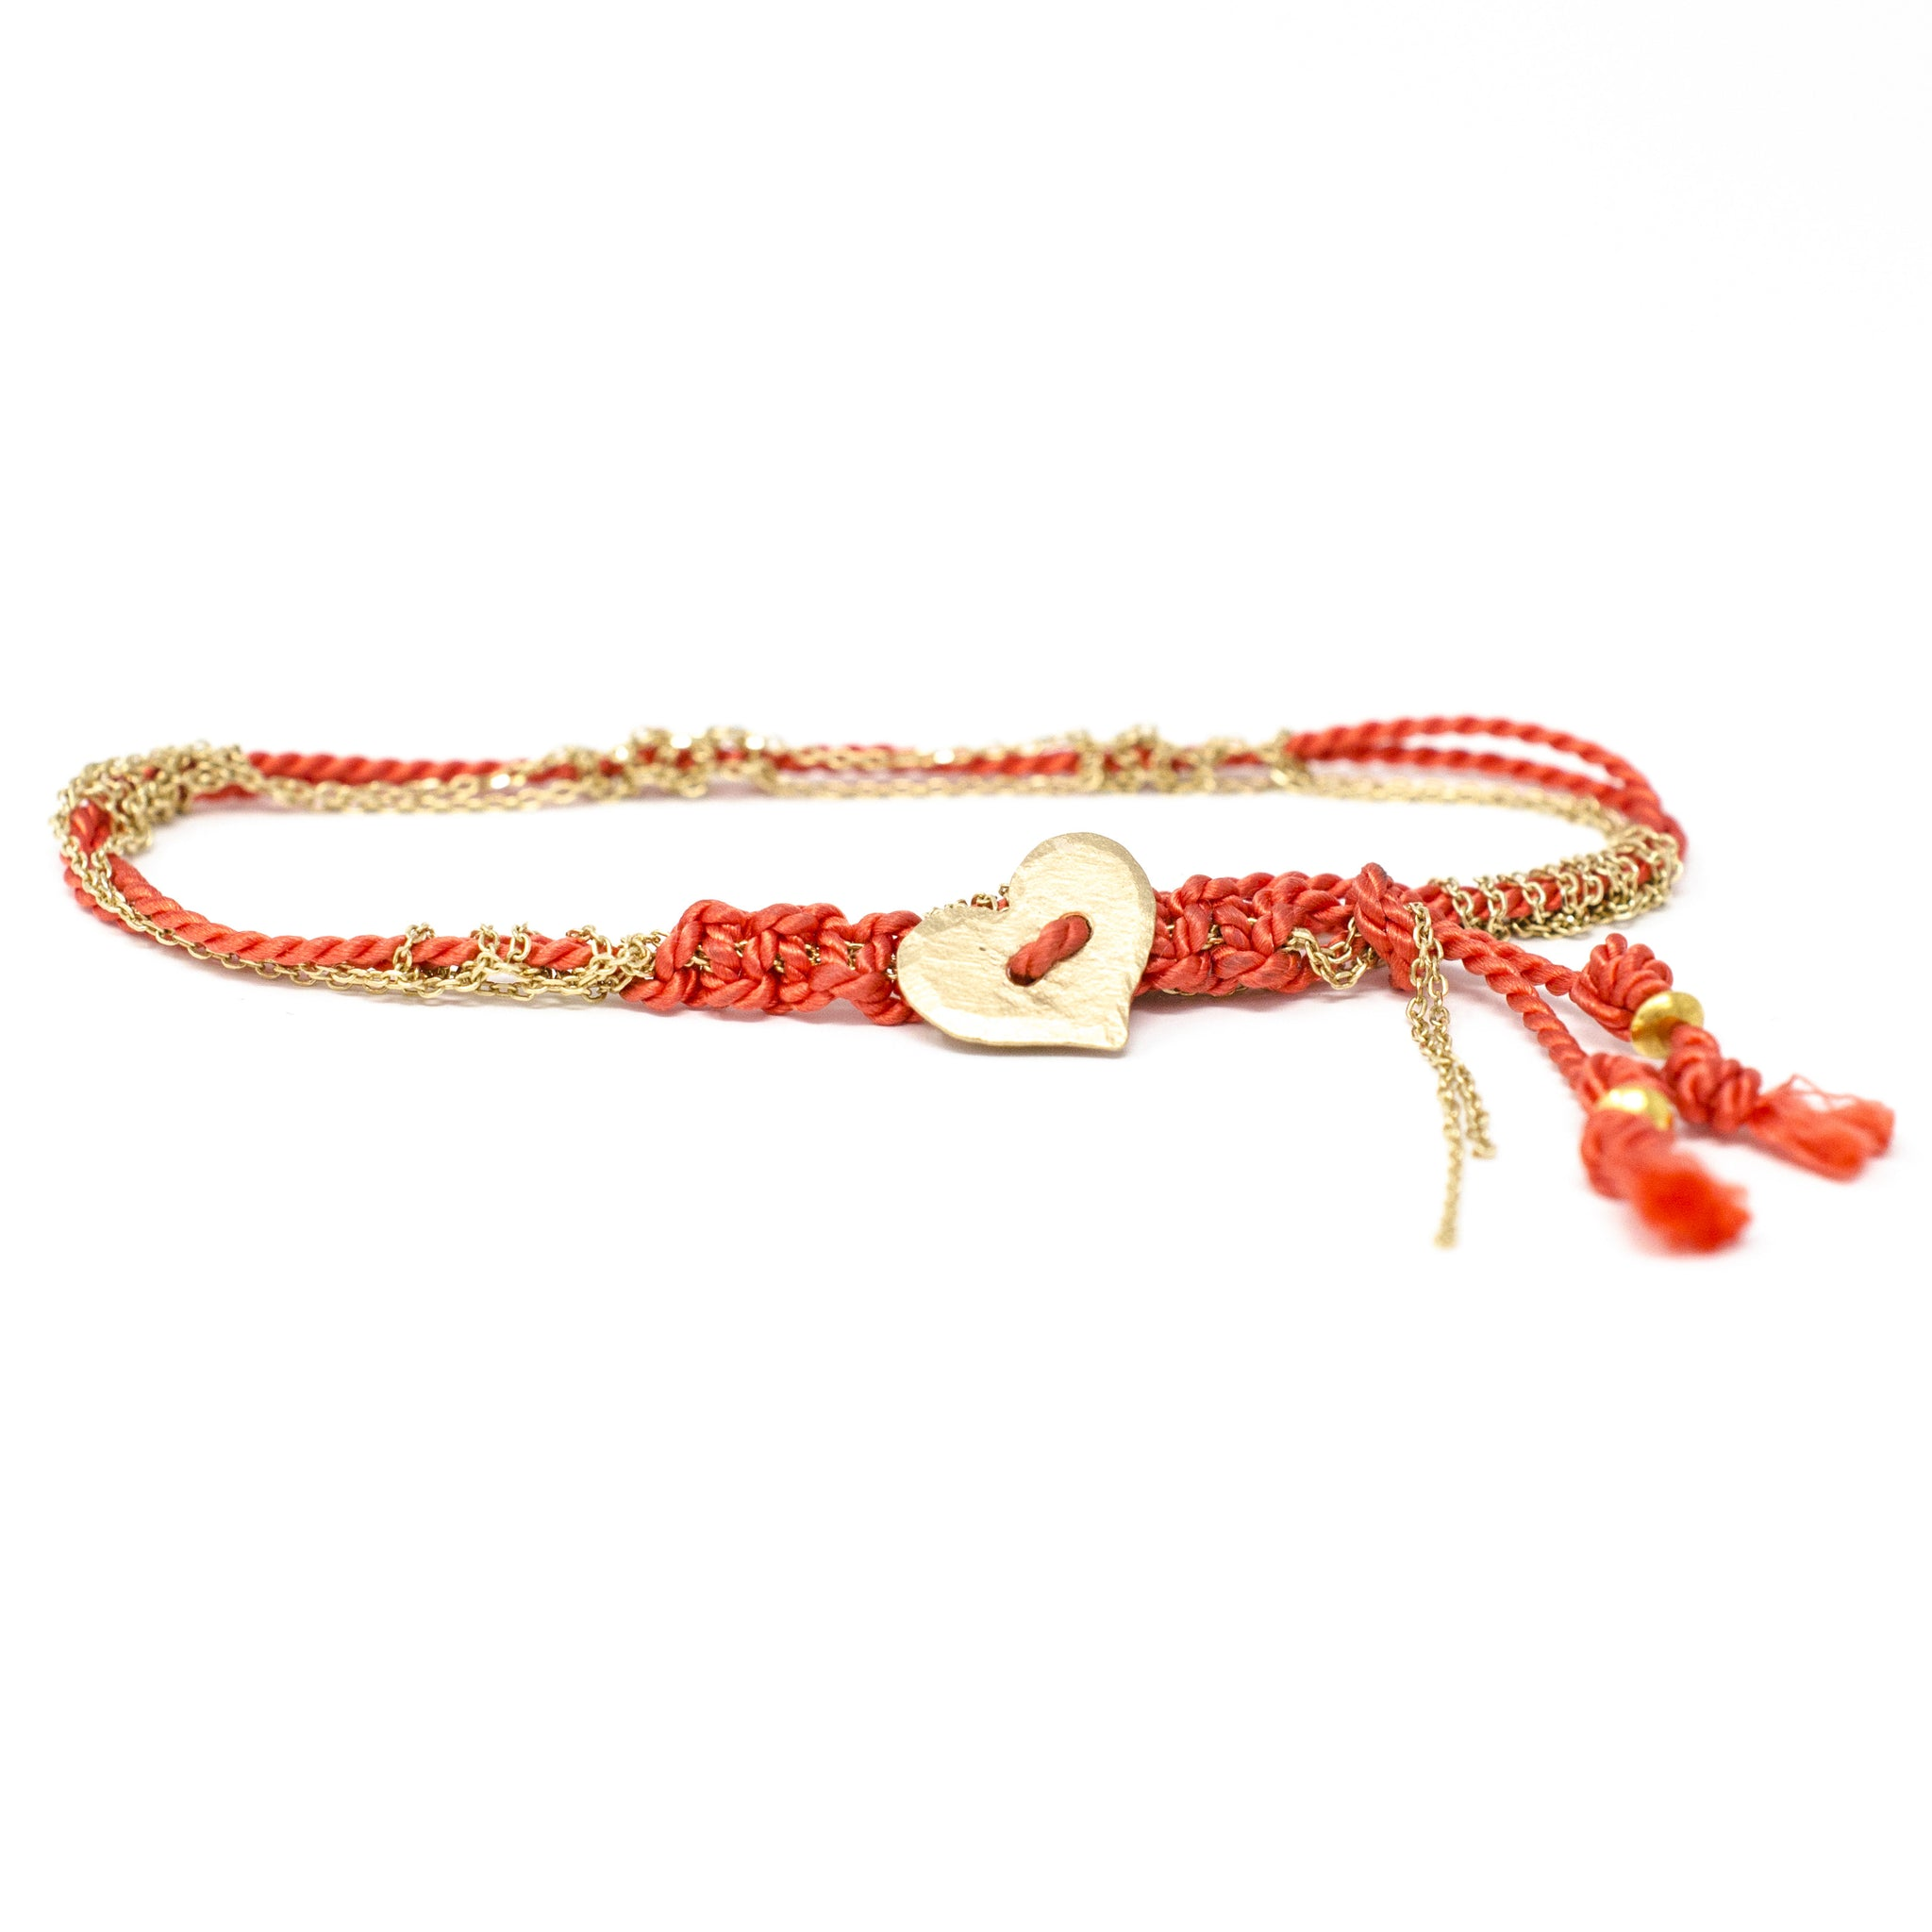 Adult Friendship Bracelet Orange